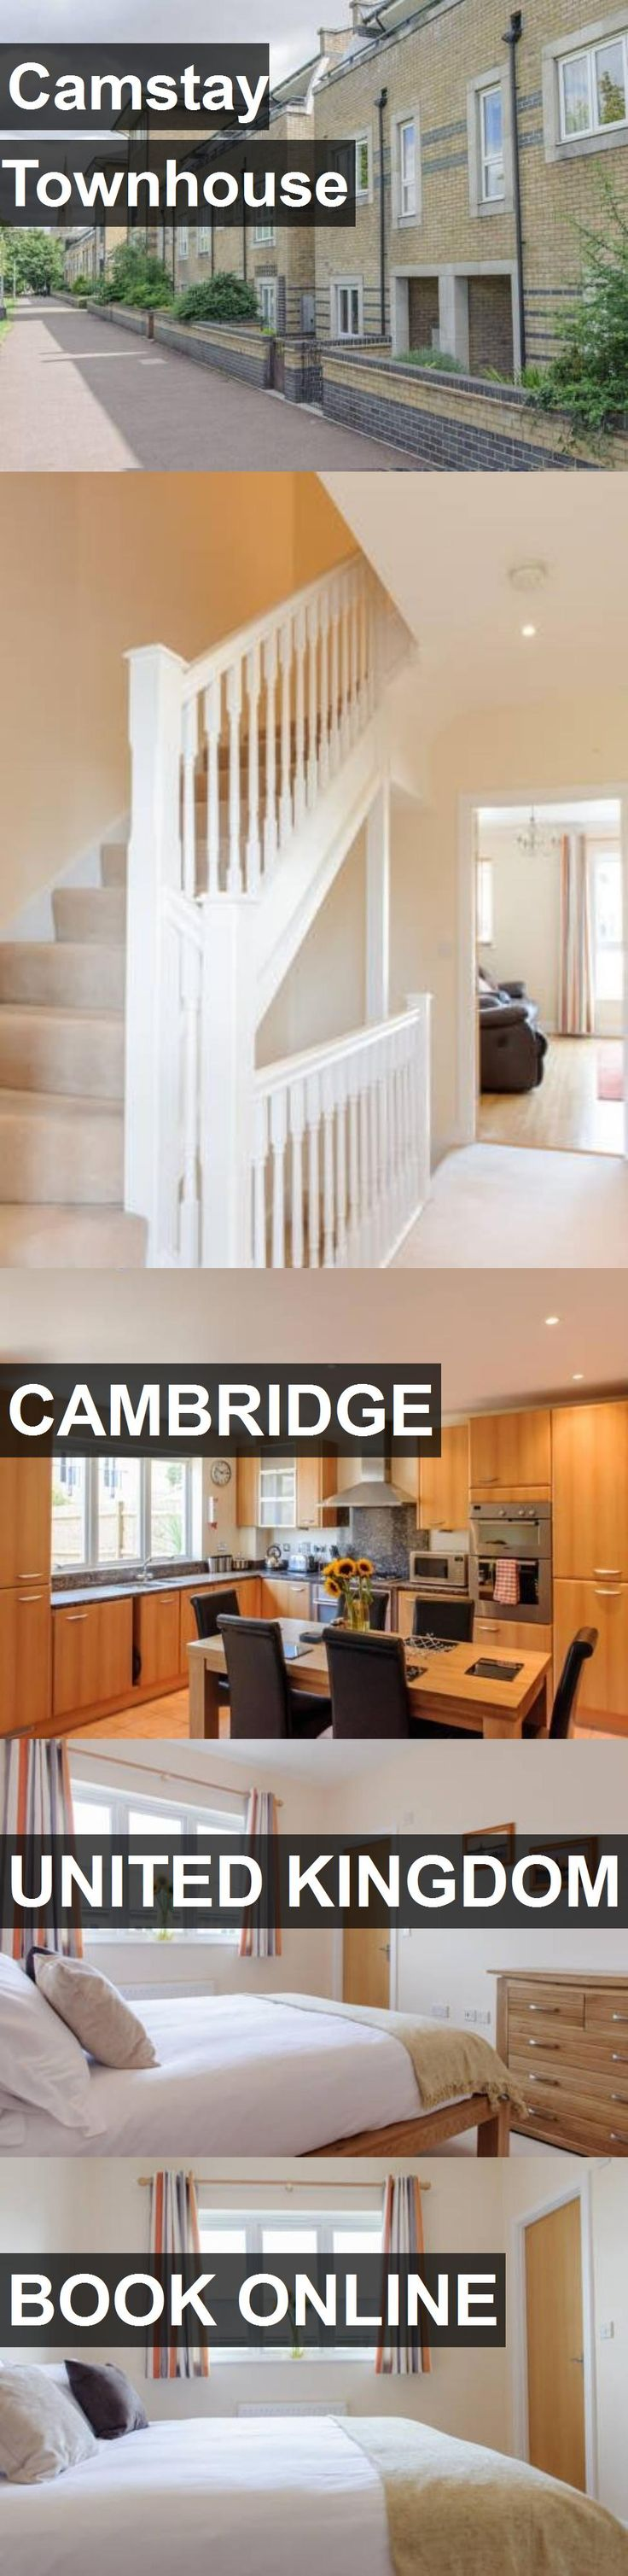 Hotel Camstay Townhouse in Cambridge, United Kingdom. For more information, photos, reviews and best prices please follow the link. #UnitedKingdom #Cambridge #travel #vacation #hotel